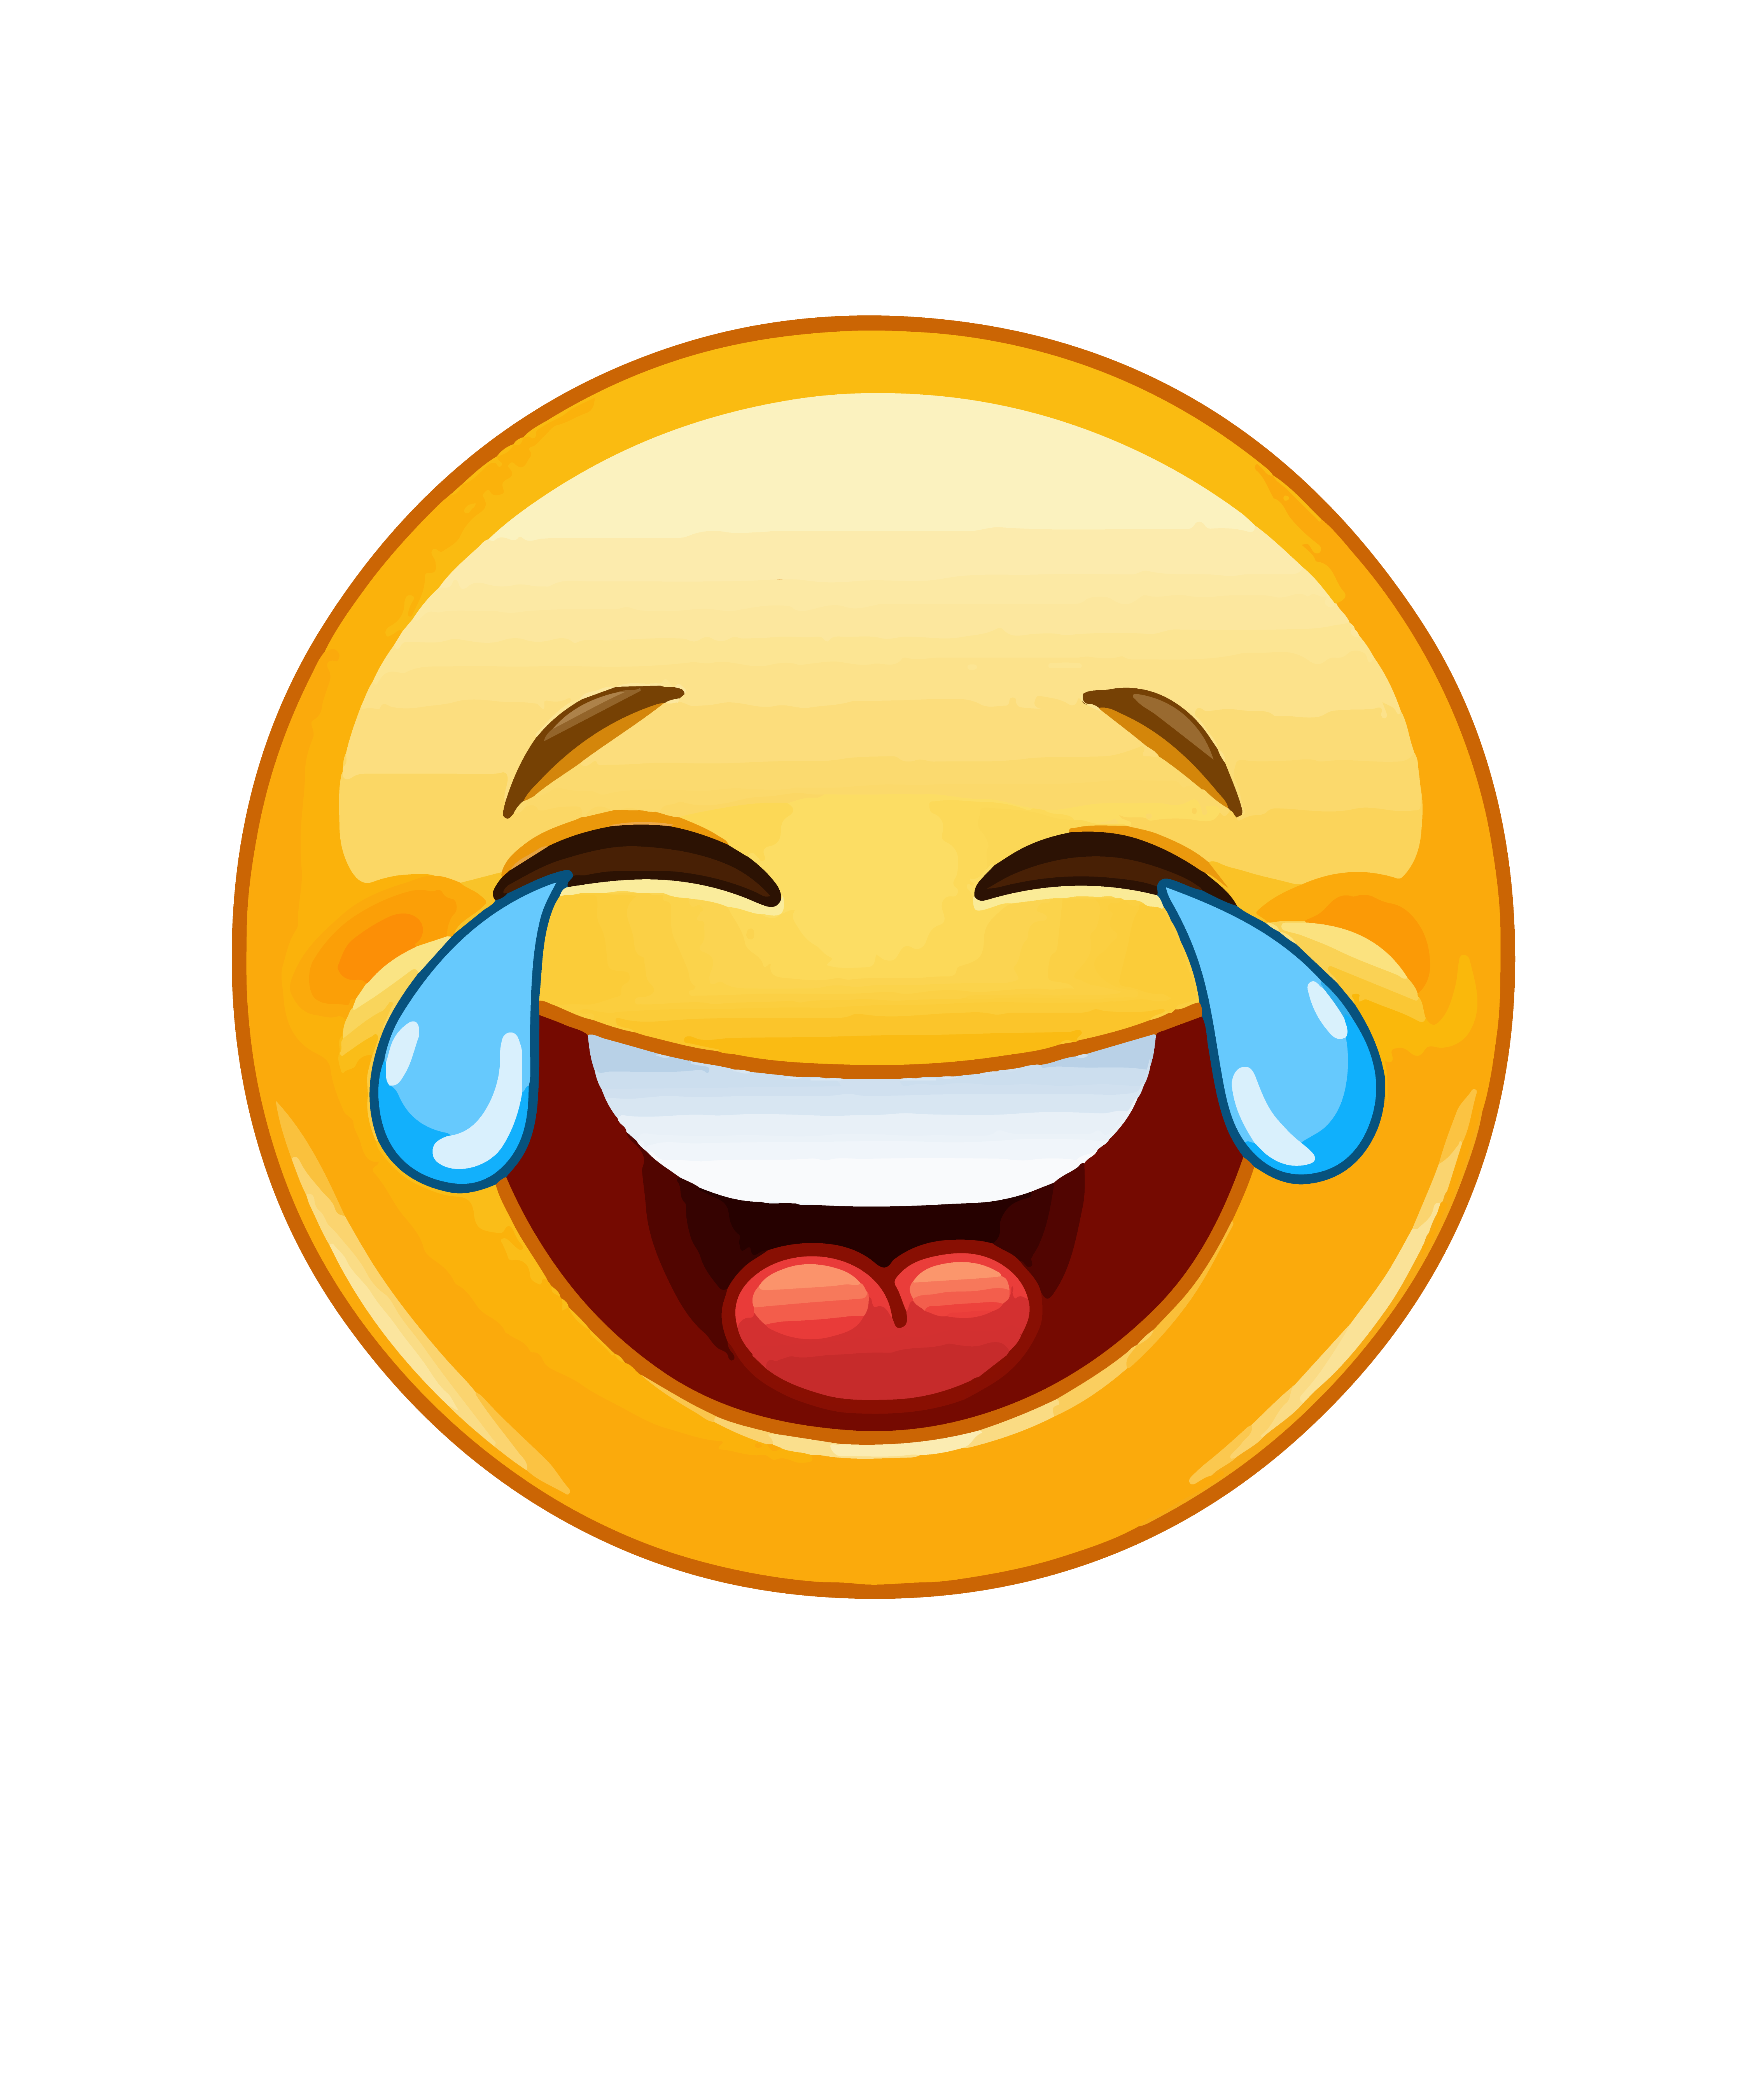 Police clipart emoji. Laugh out loud costumes